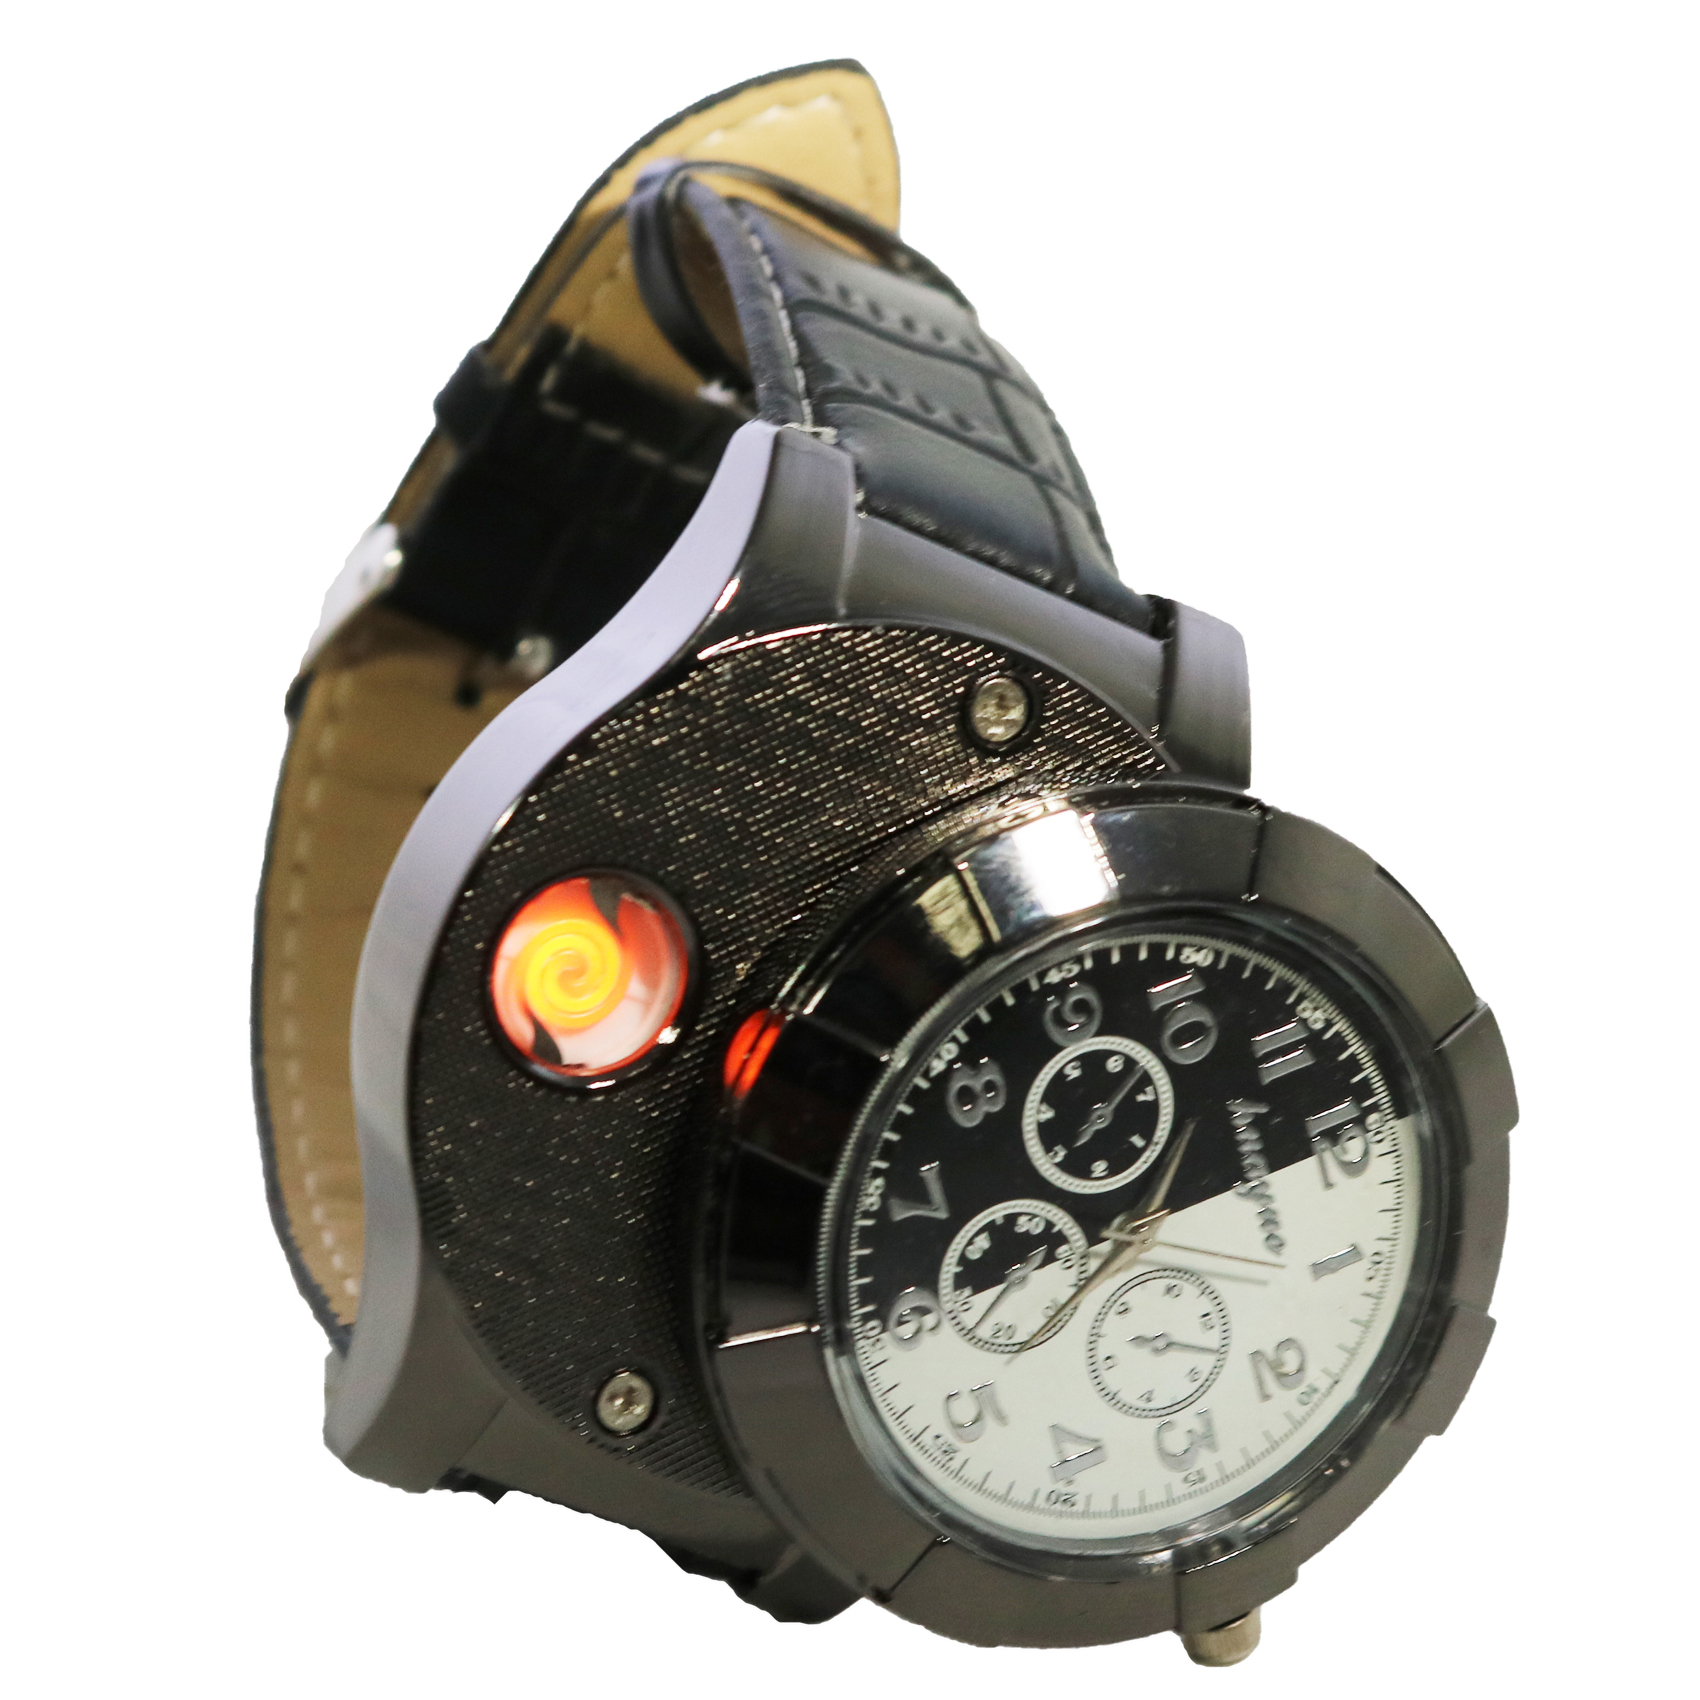 Rechargeable Leather Watch With Cigarette Lighter  - Black